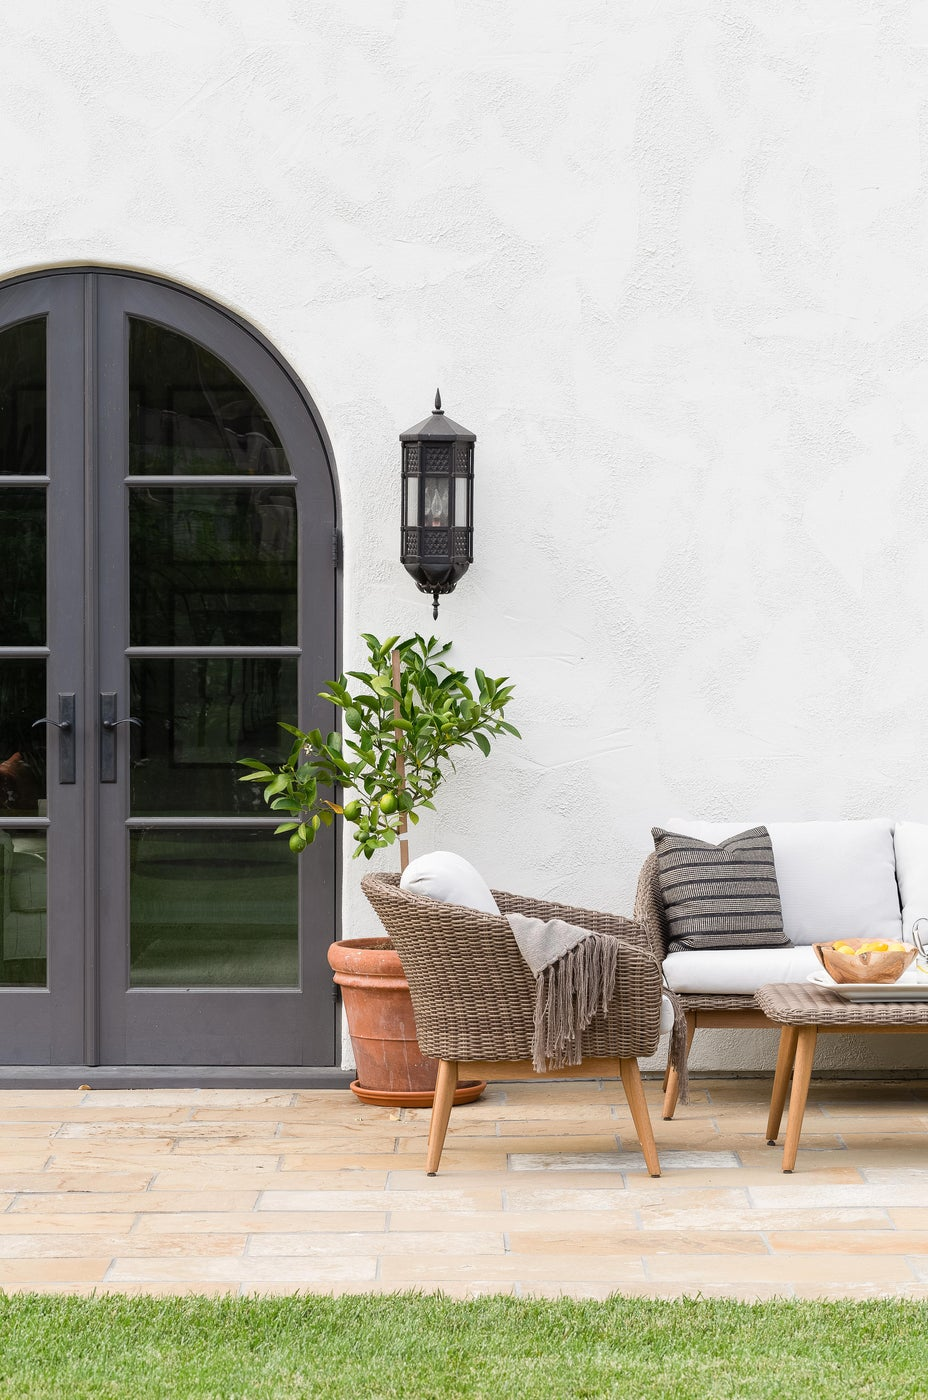 Transitional California Spanish Revival Outdoor Living Space